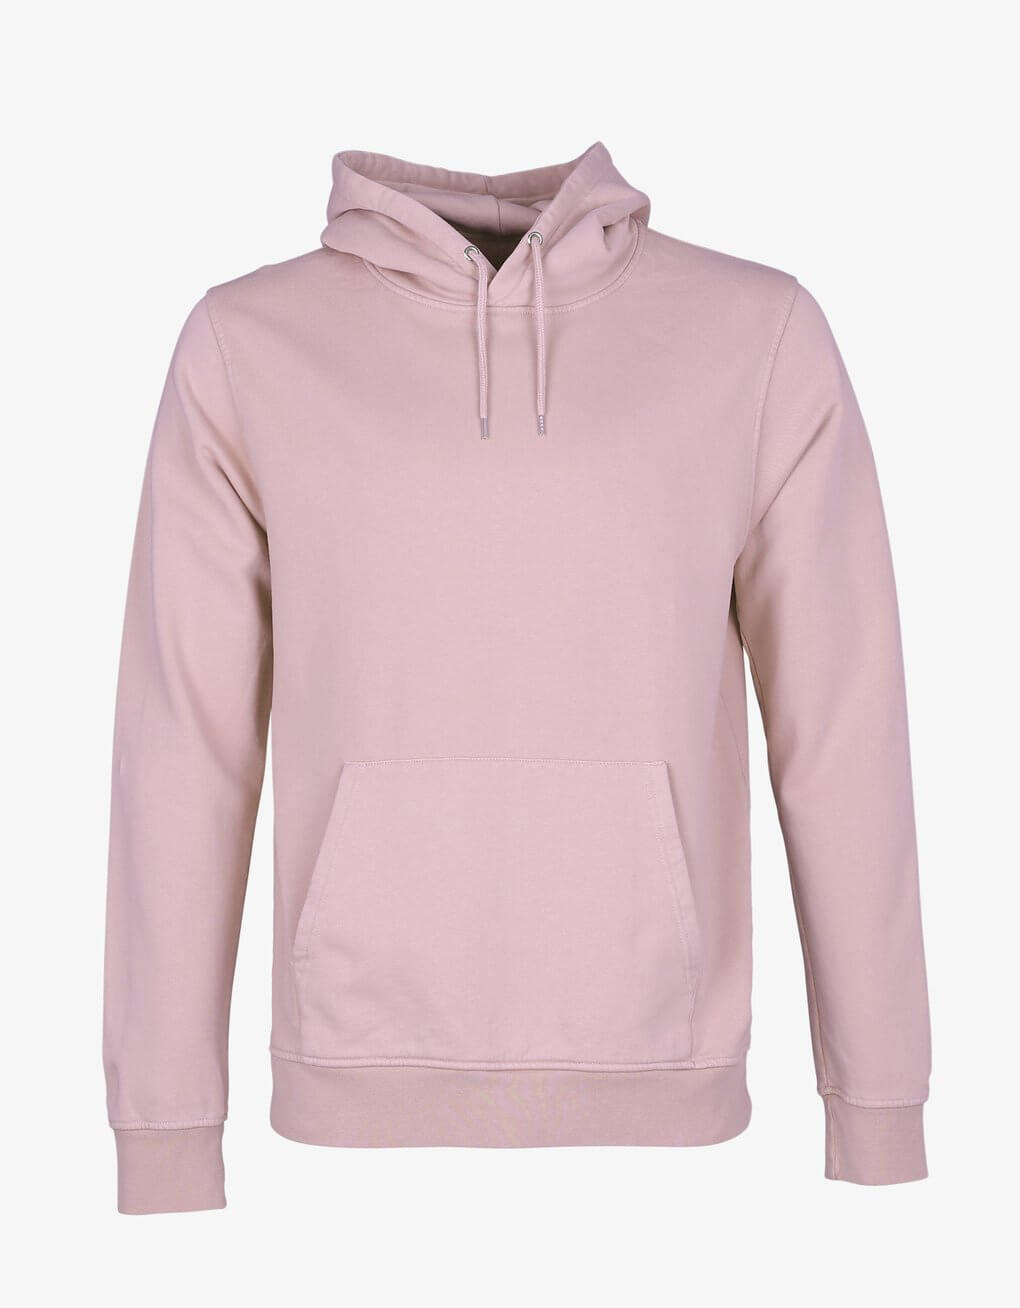 Colorful Standard - Classic Organic Hood - CS1006 - Faded Pink